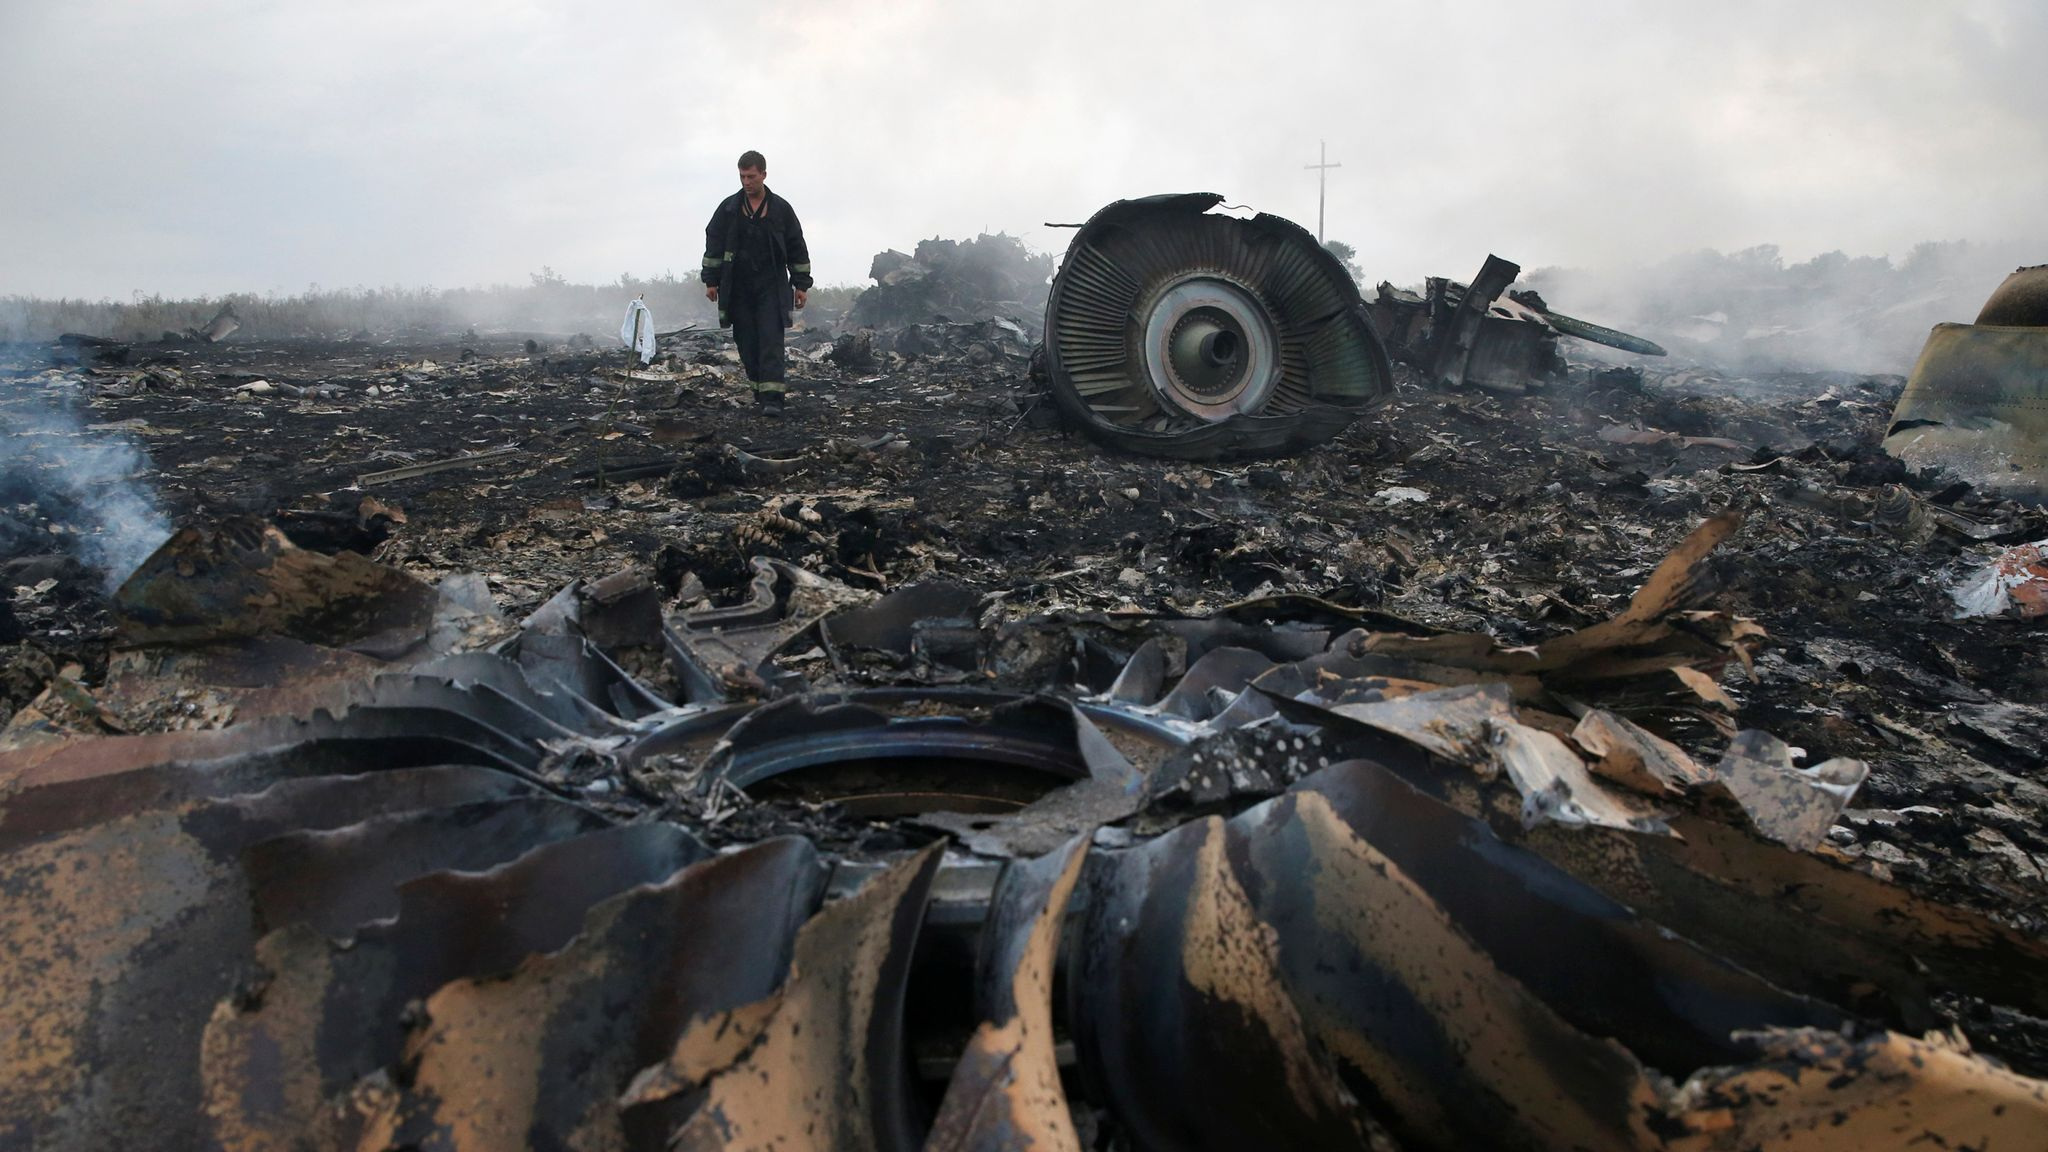 MH17 investigators release calls between 'top Russian officials and Ukraine rebels'